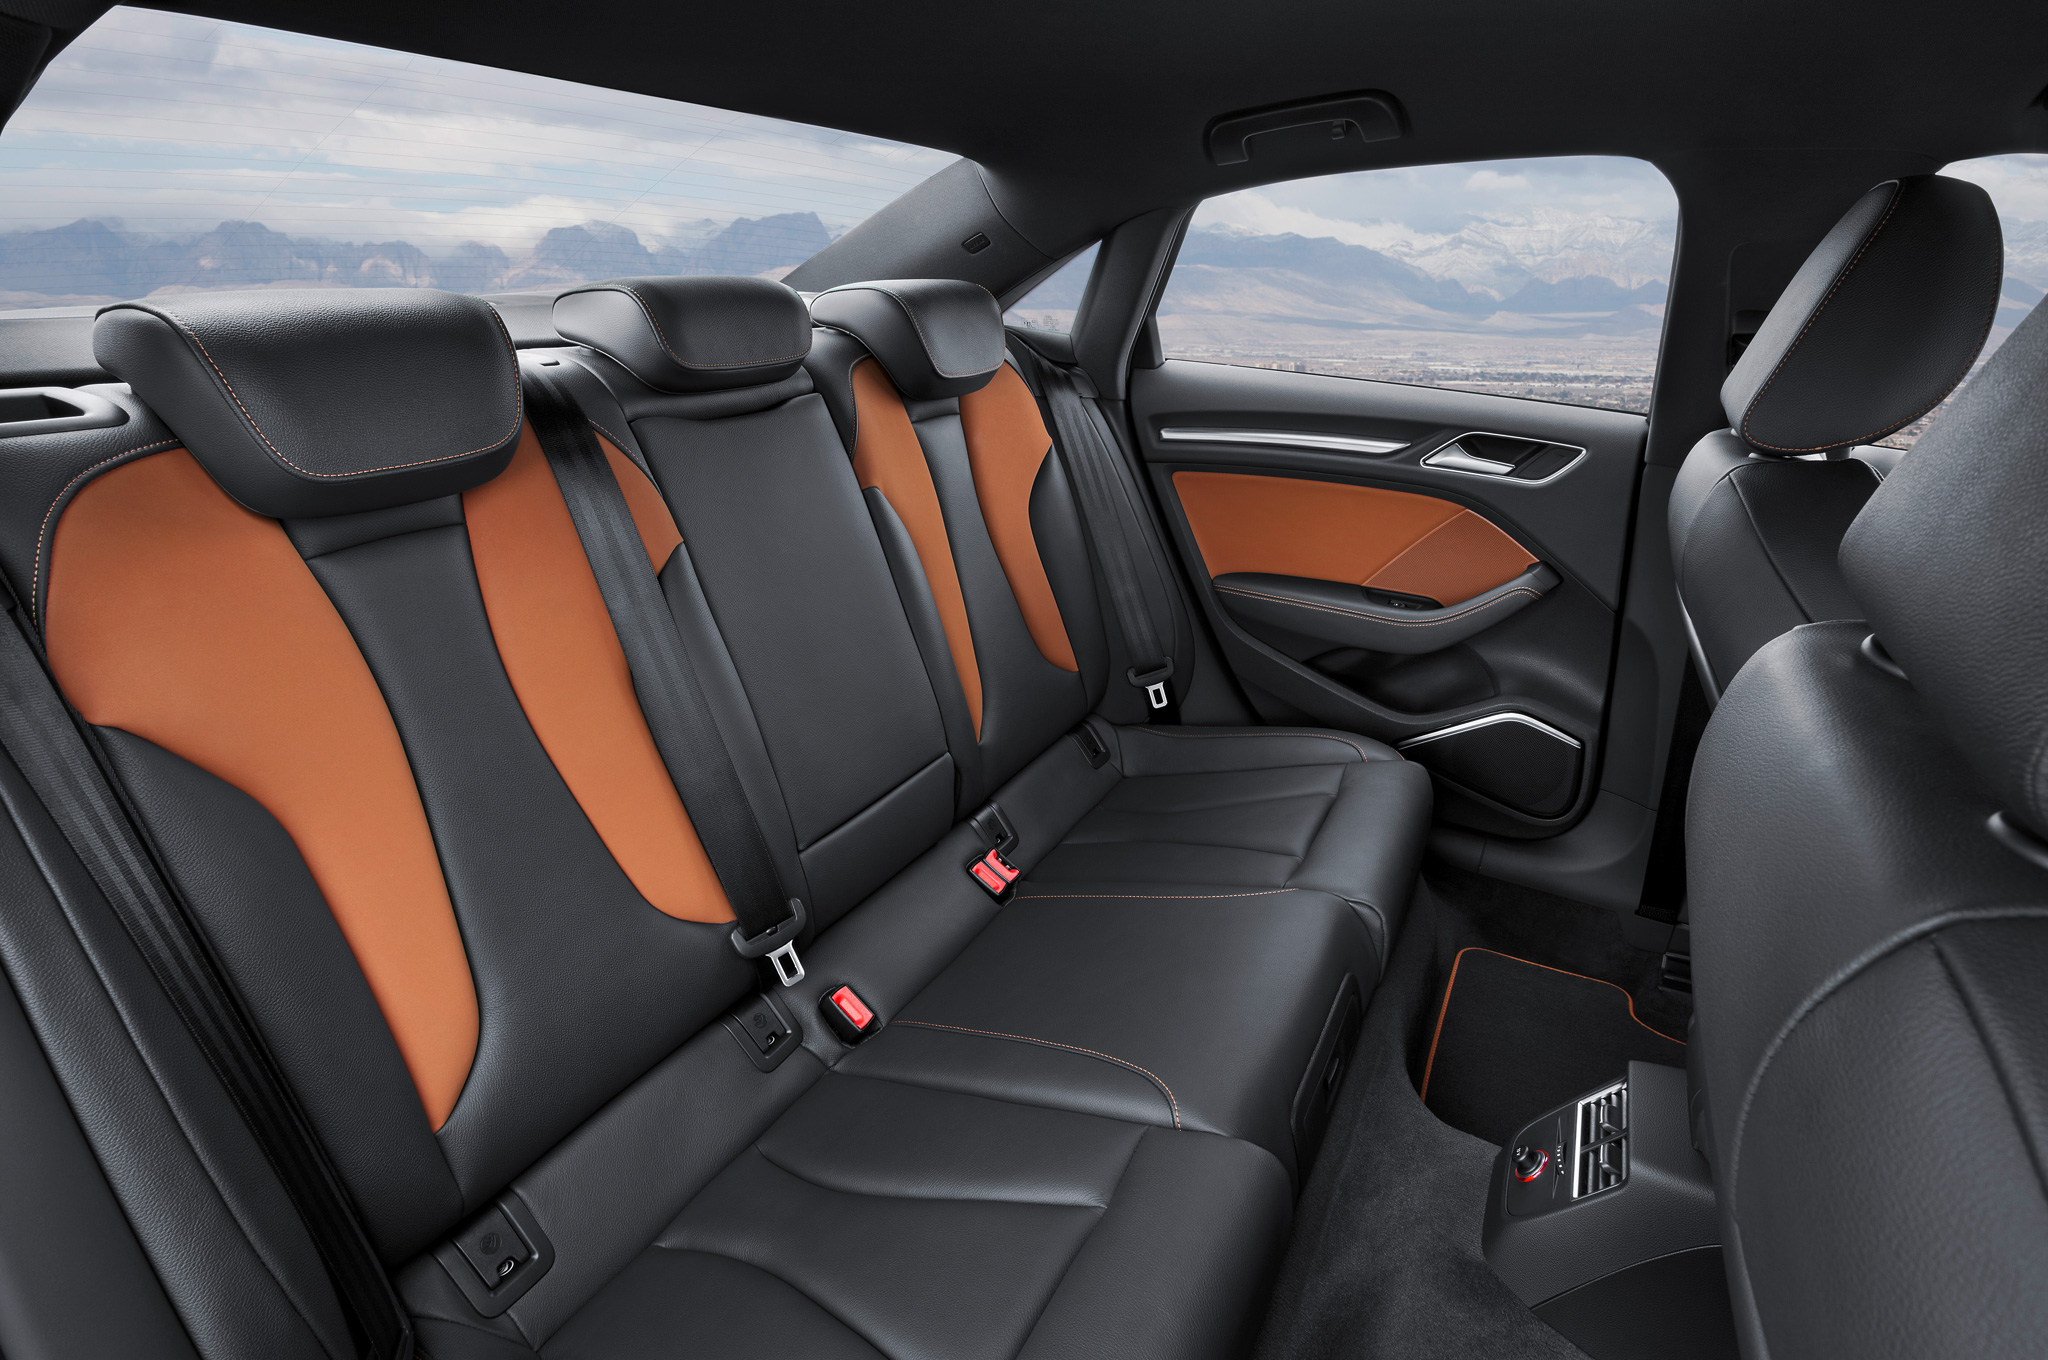 2015 Audi S3 Sedan Rear Seats Interior (Photo 7 of 10)